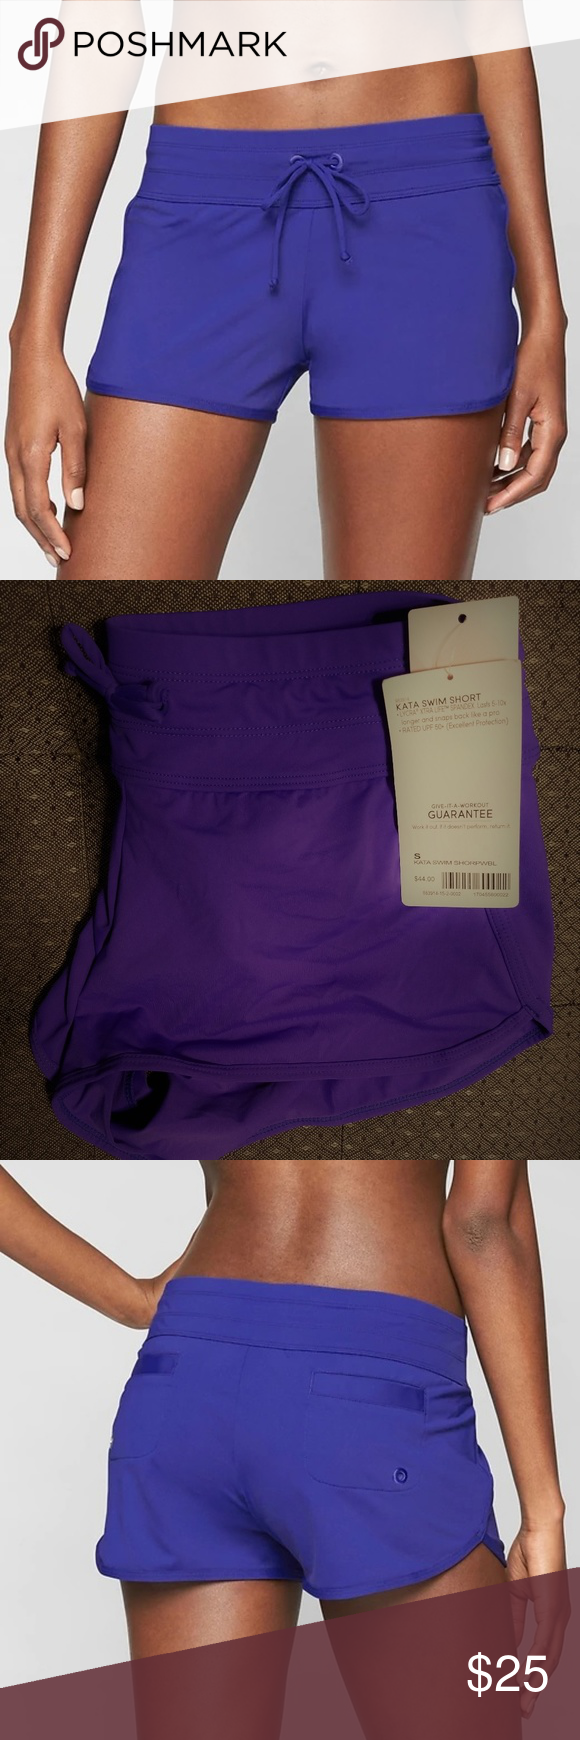 "Athleta Kata Swim Short Powerful Blue Small v159 Brand label has been marked to prevent returns to the retail store.  Second picture shows the color better ""Powerful Blue"".  NWT - may have been tried on at department store.  Semi-fitted, Mid rise Skims over the body for a just-right fit, sits below the natural waist Inseam: 2.5""  Ultra-comfortable wide waistband w/adjustable drawstring BUILT-IN BRIEF. Eliminates flash factor Two back welt pockets w/drainage grommets Nylon/Lycra® Spandex…"